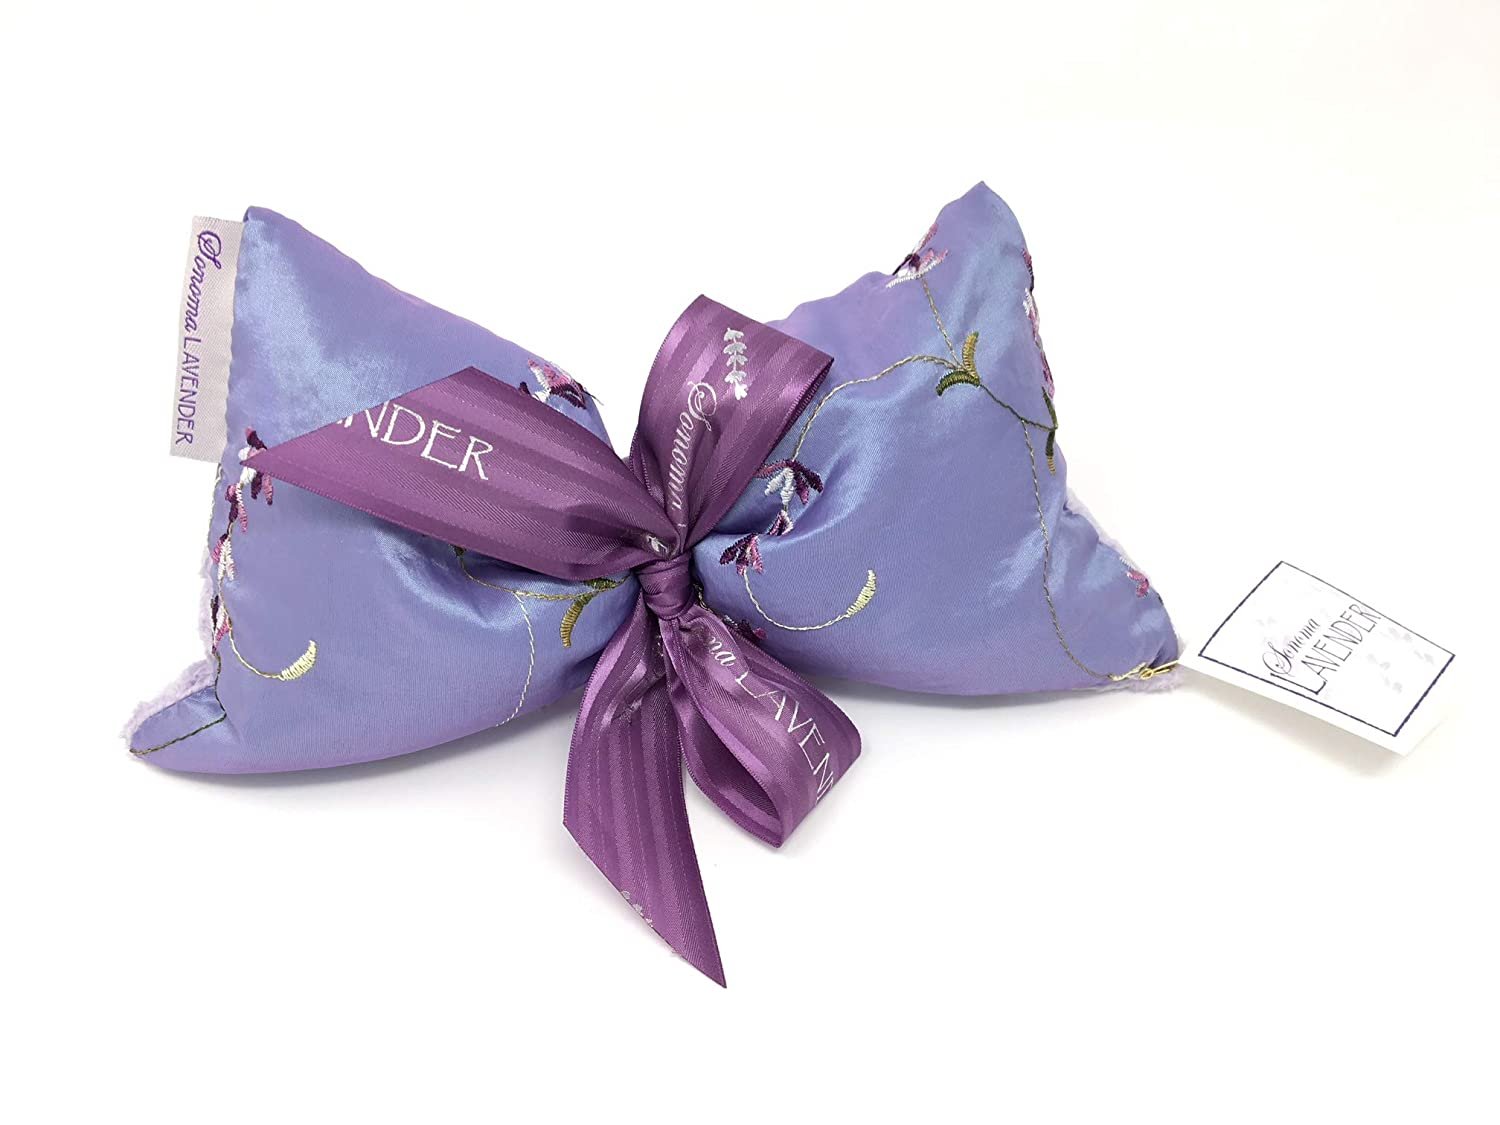 Sonoma Lavender Eye Mask - Embroidered Lavender